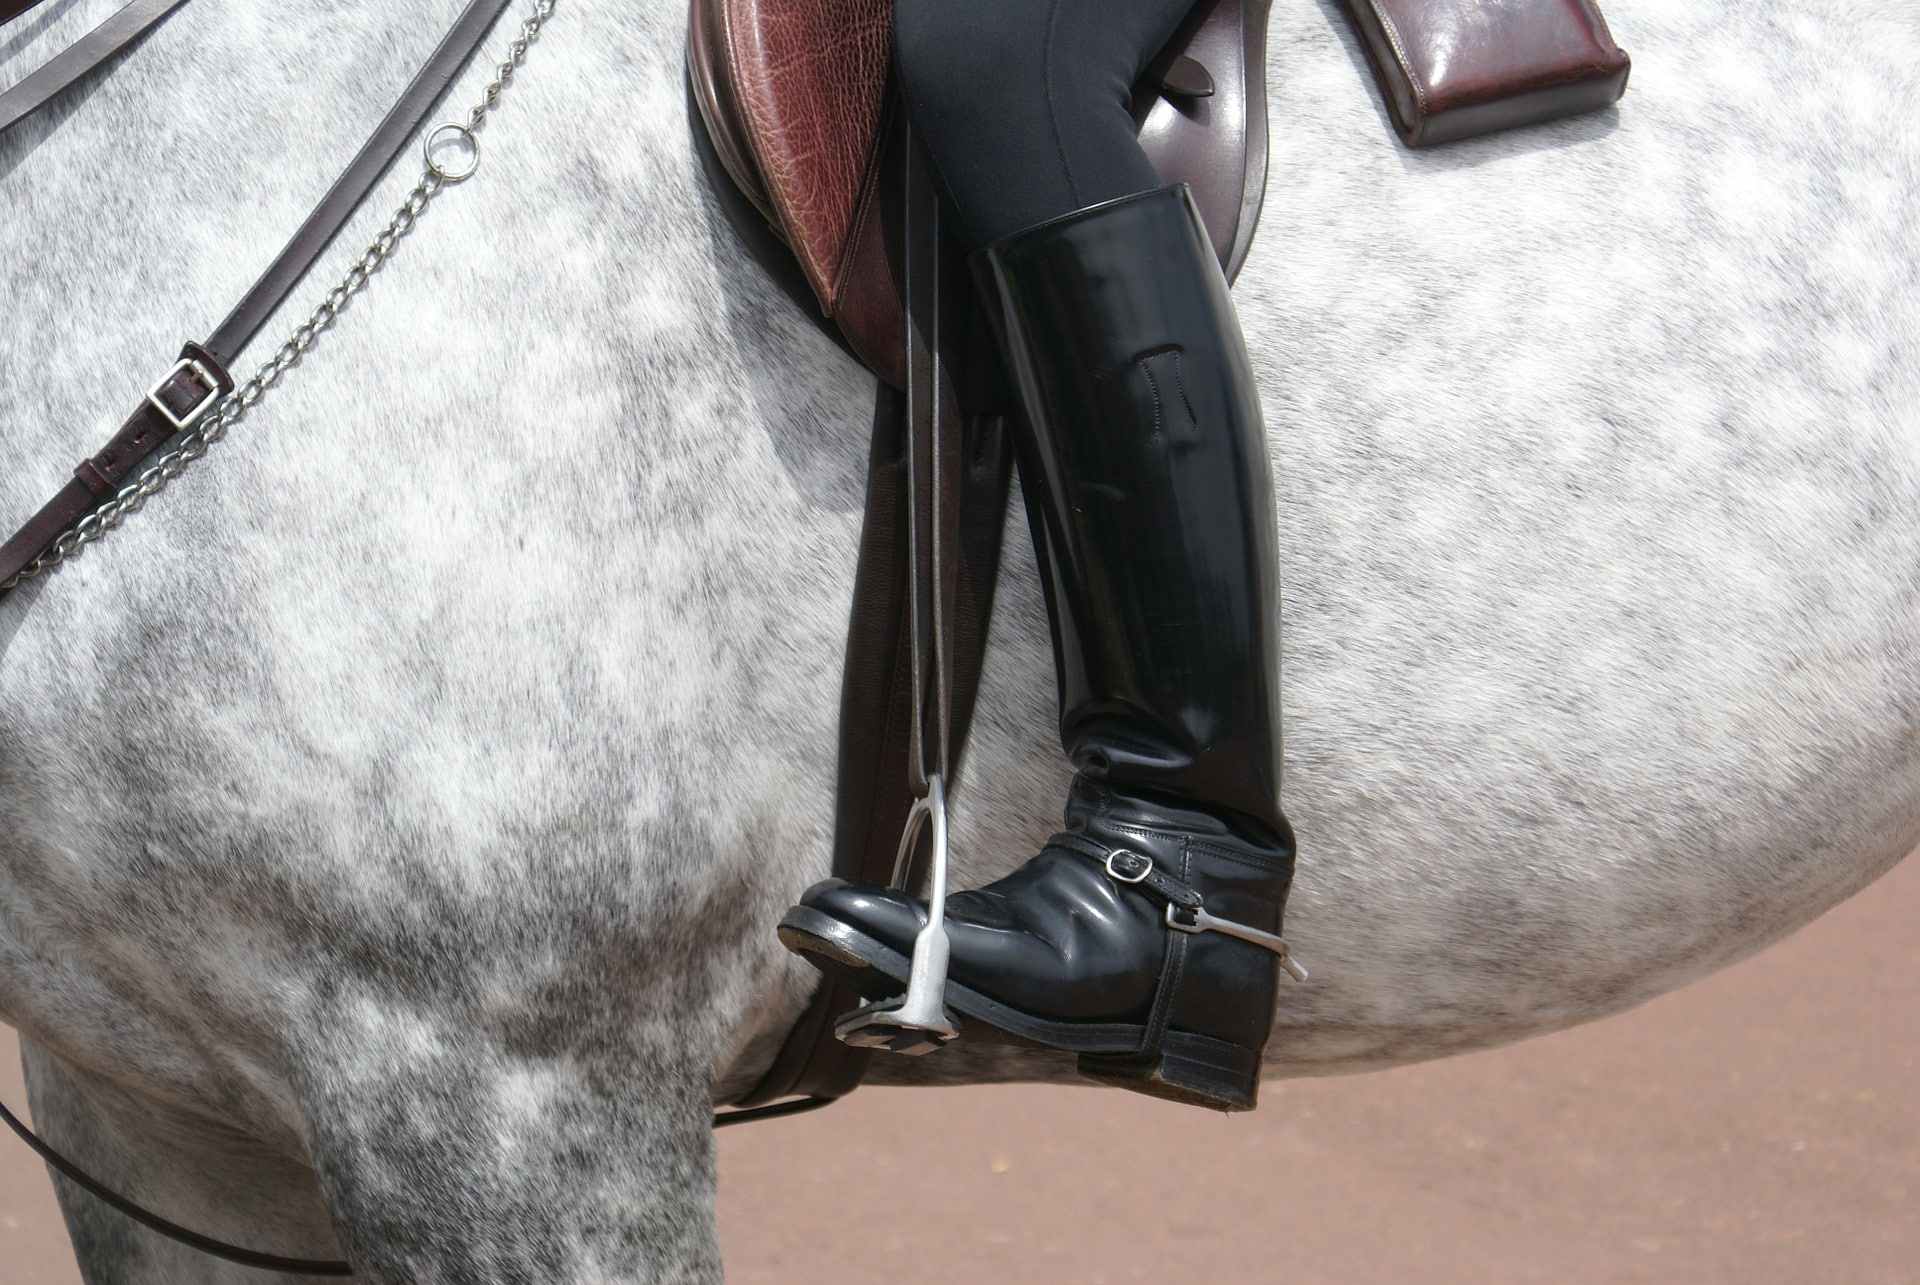 dressage boots need to be clean and shiny